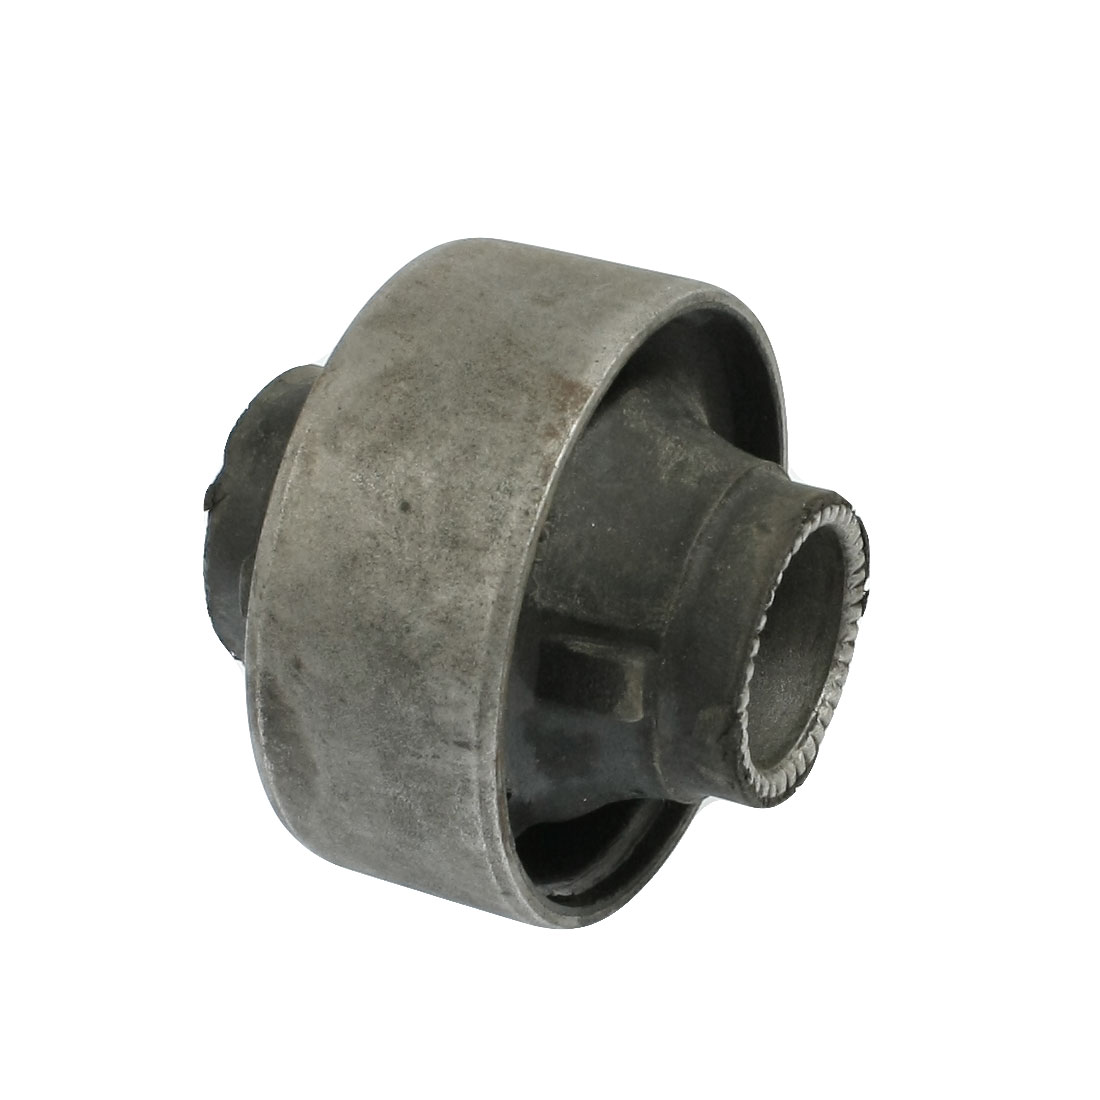 Vehicle Car Part Lower Control Arm Bushing for Toyota Vios